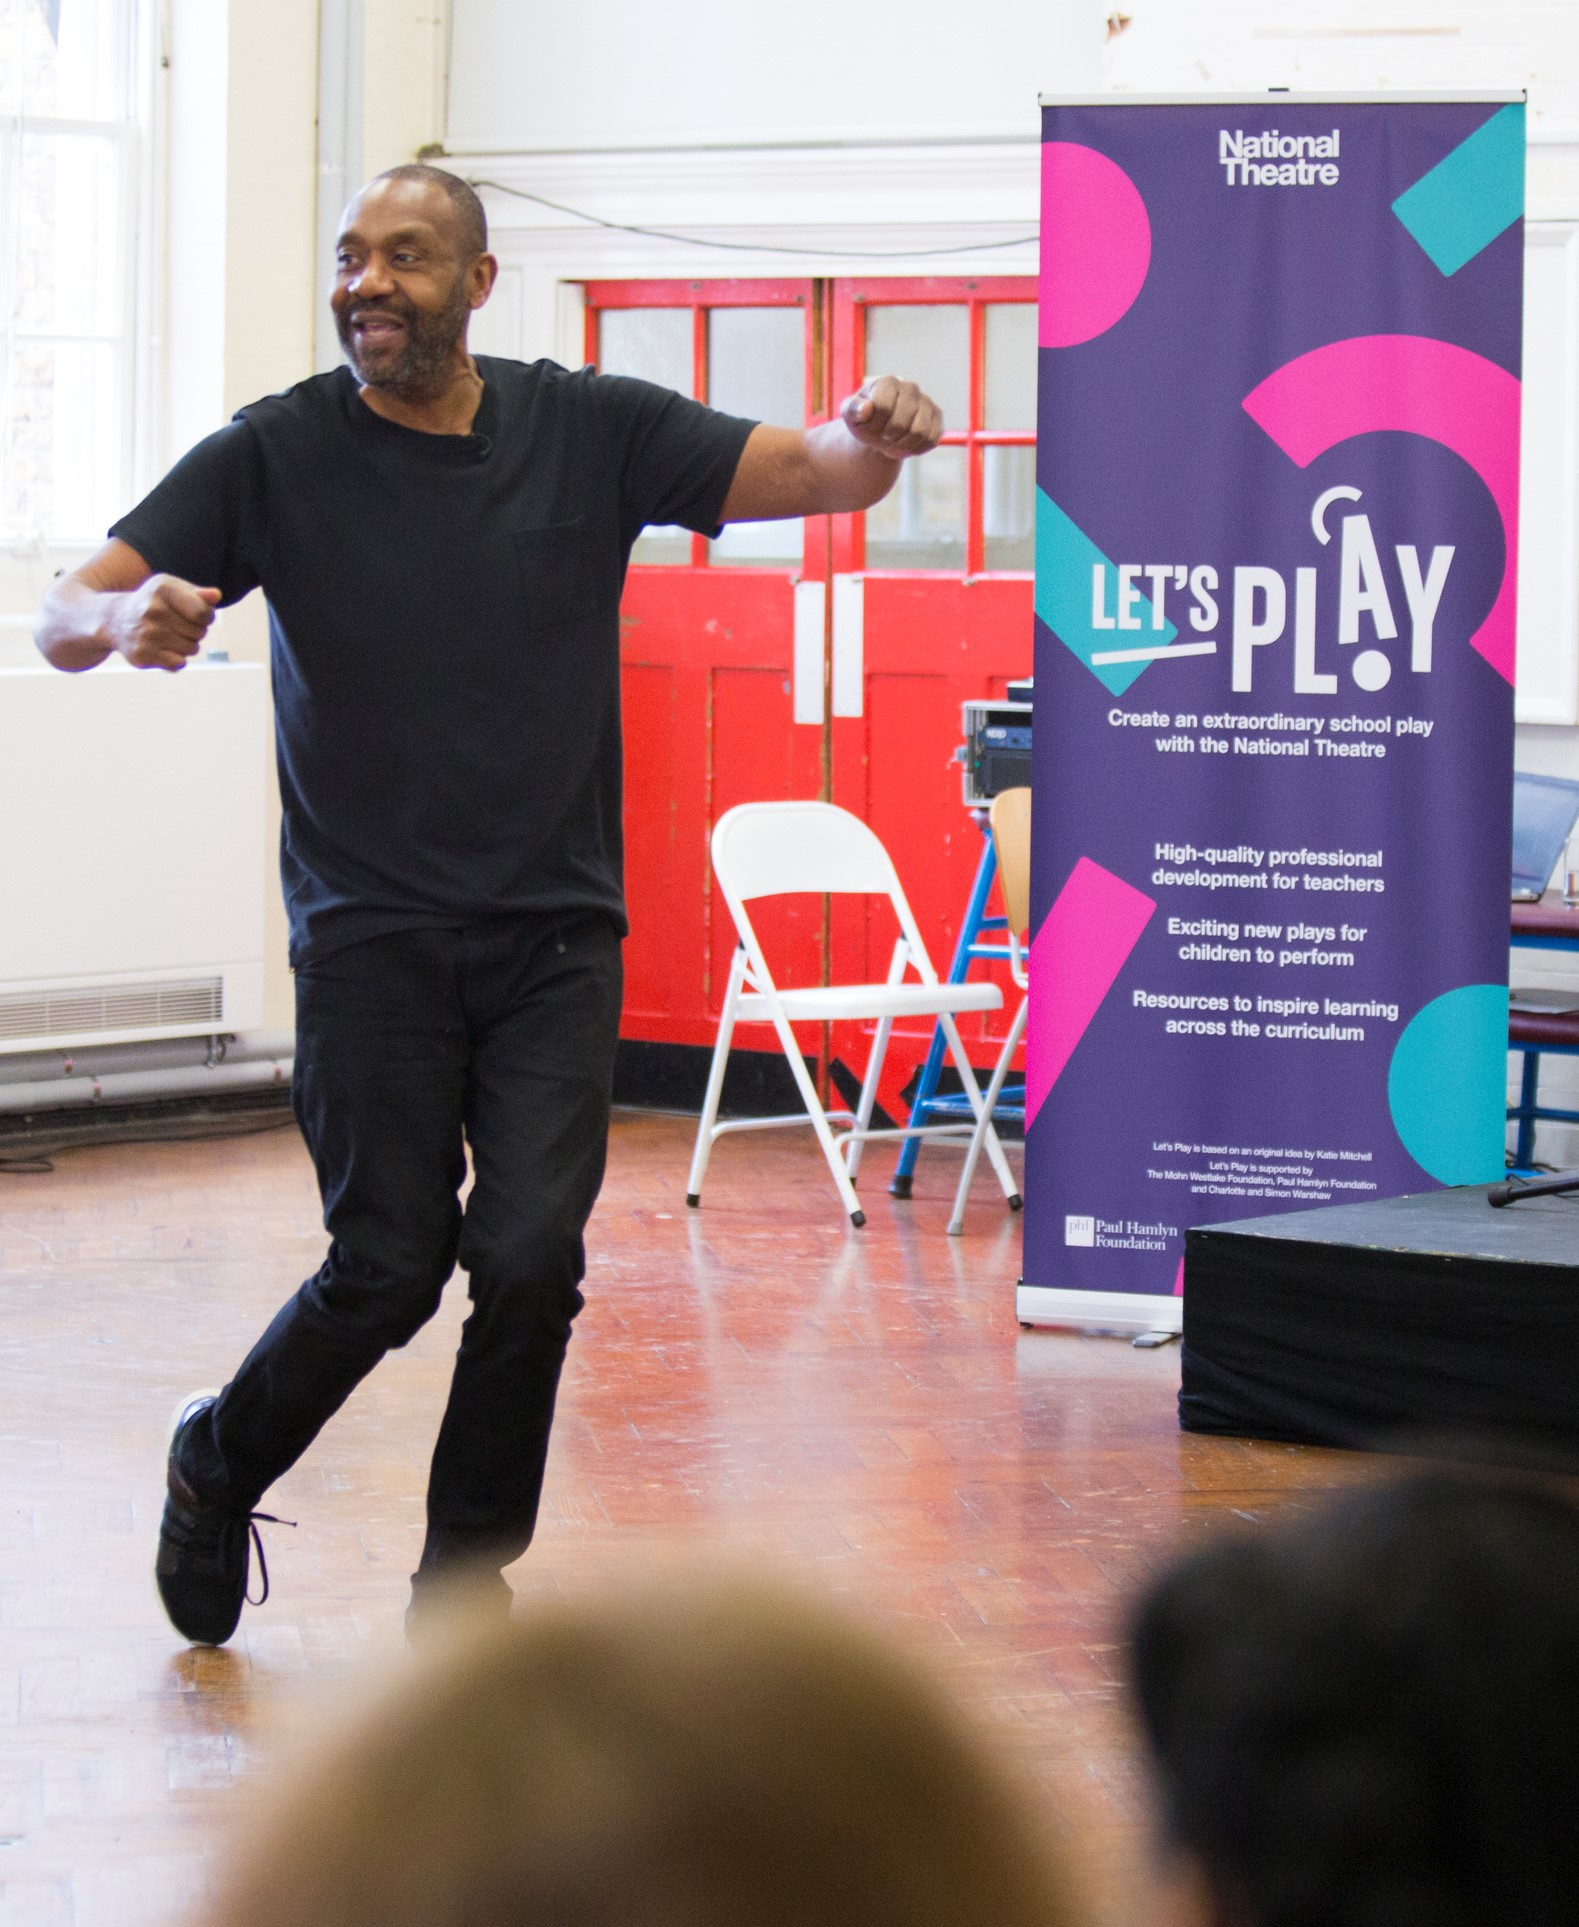 Sir Lenny Henry has helped launch Let's Play